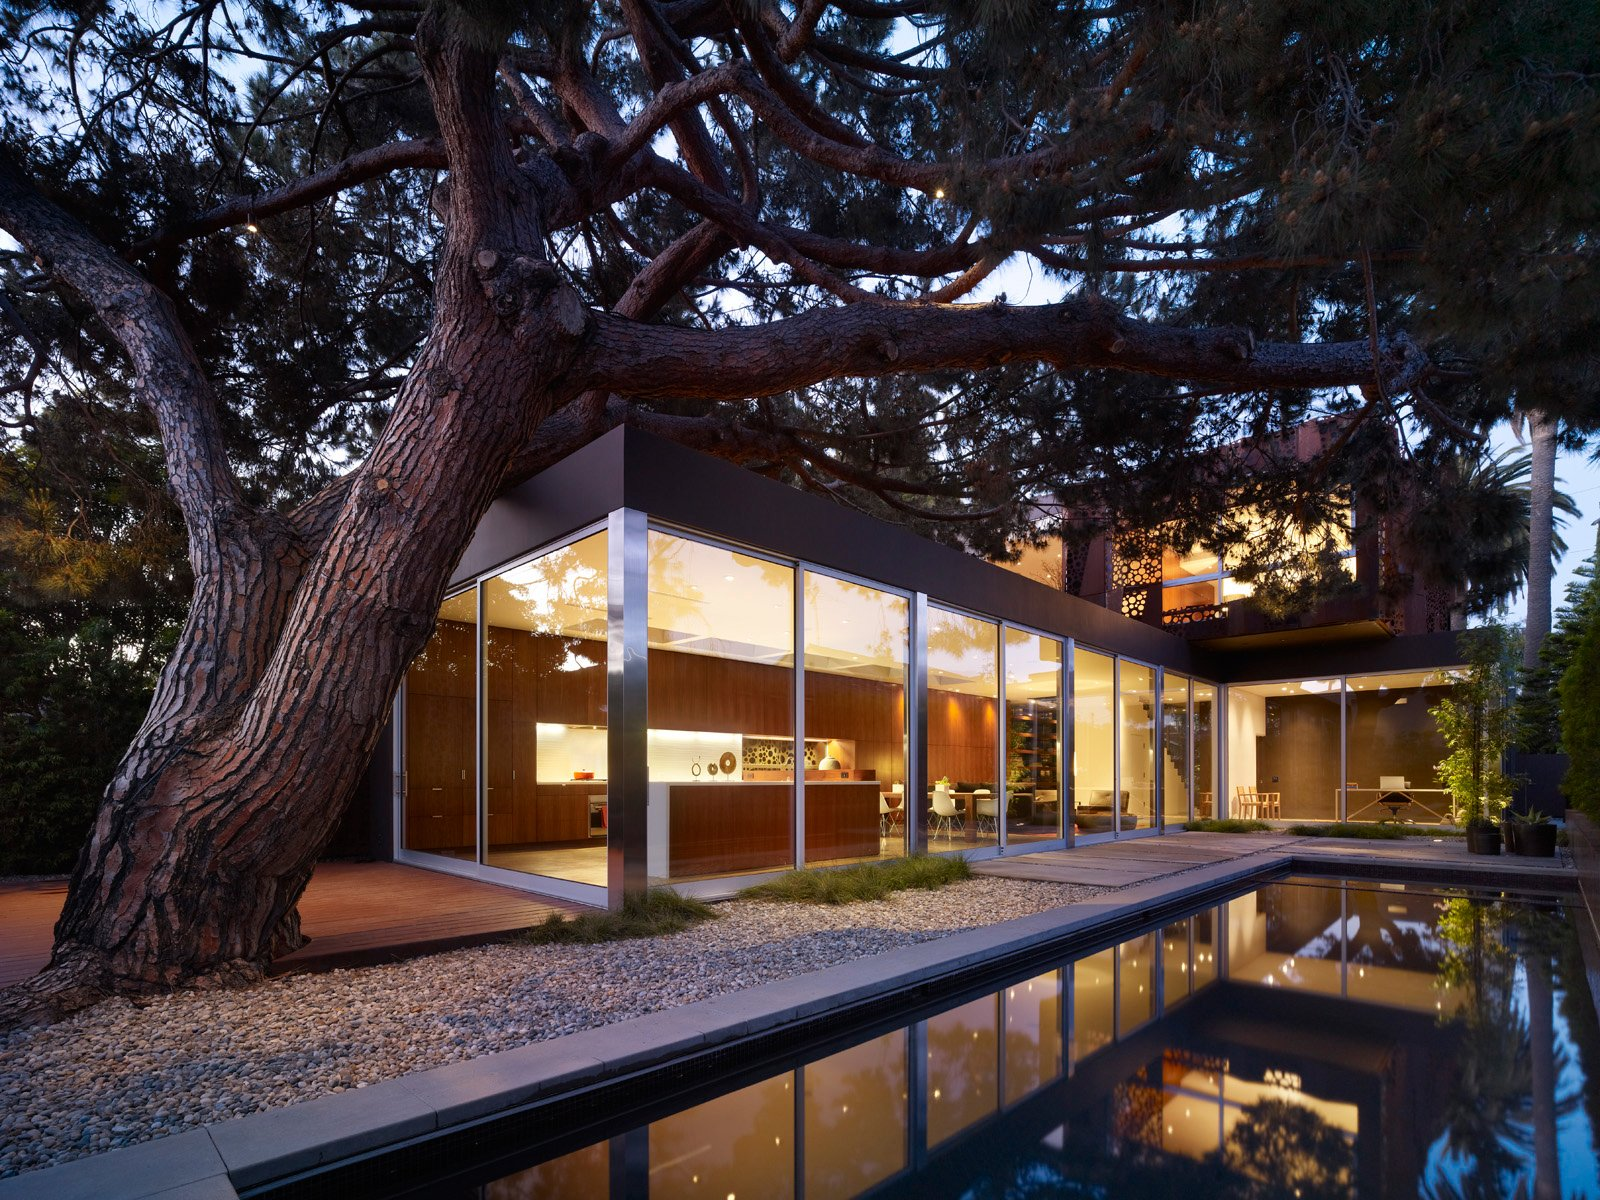 Finally, the stone pine tree reveals itself from the backyard looking over the Venice neighborhood. Its canopy stretches over the first floor of the home and can be glimpsed by the skylights placed strategically above the living area.  Ways to Incorporate Trees into Homes by Diana Budds from Top 10 Houses on Dwell This Week December 19, 2013